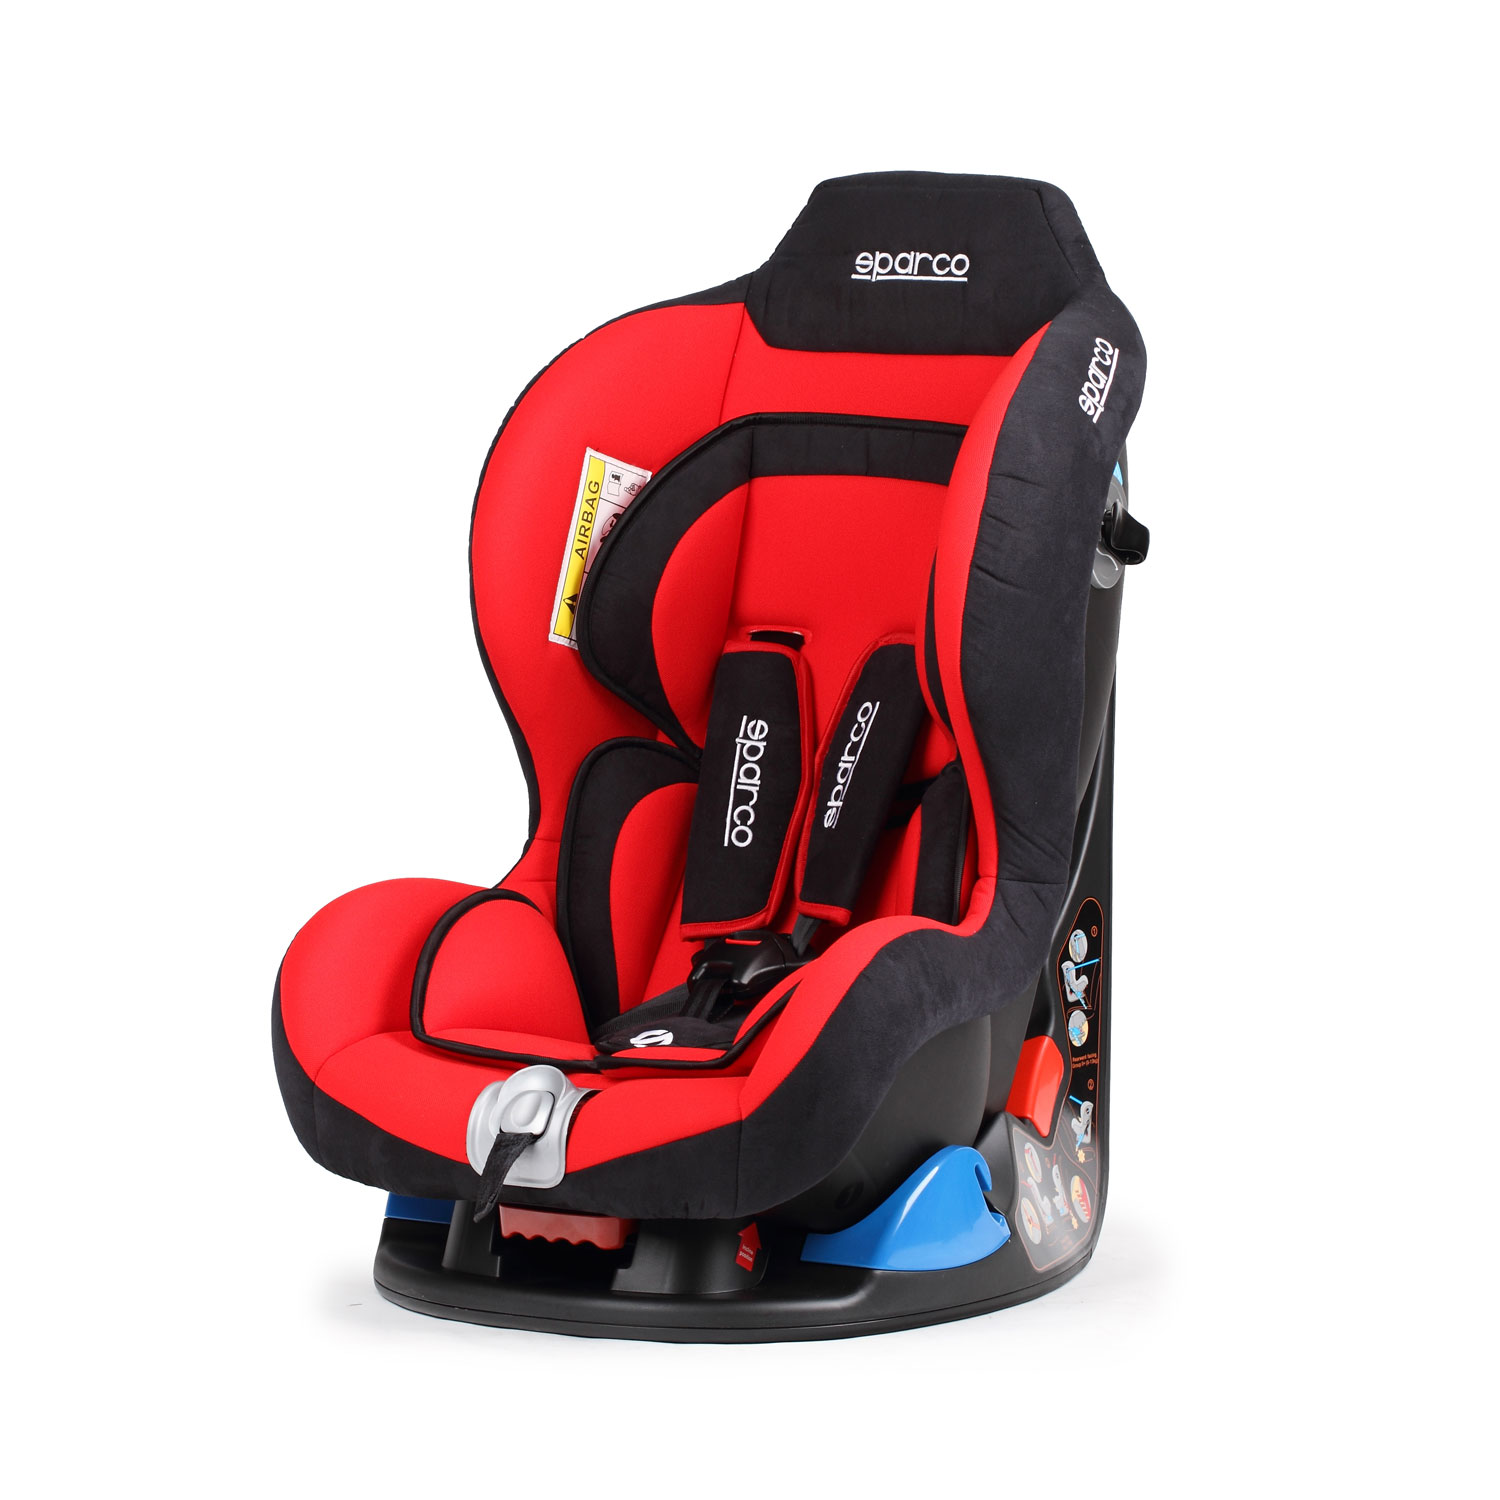 sparco italy f5000k red child seat 9 18 kg red car. Black Bedroom Furniture Sets. Home Design Ideas